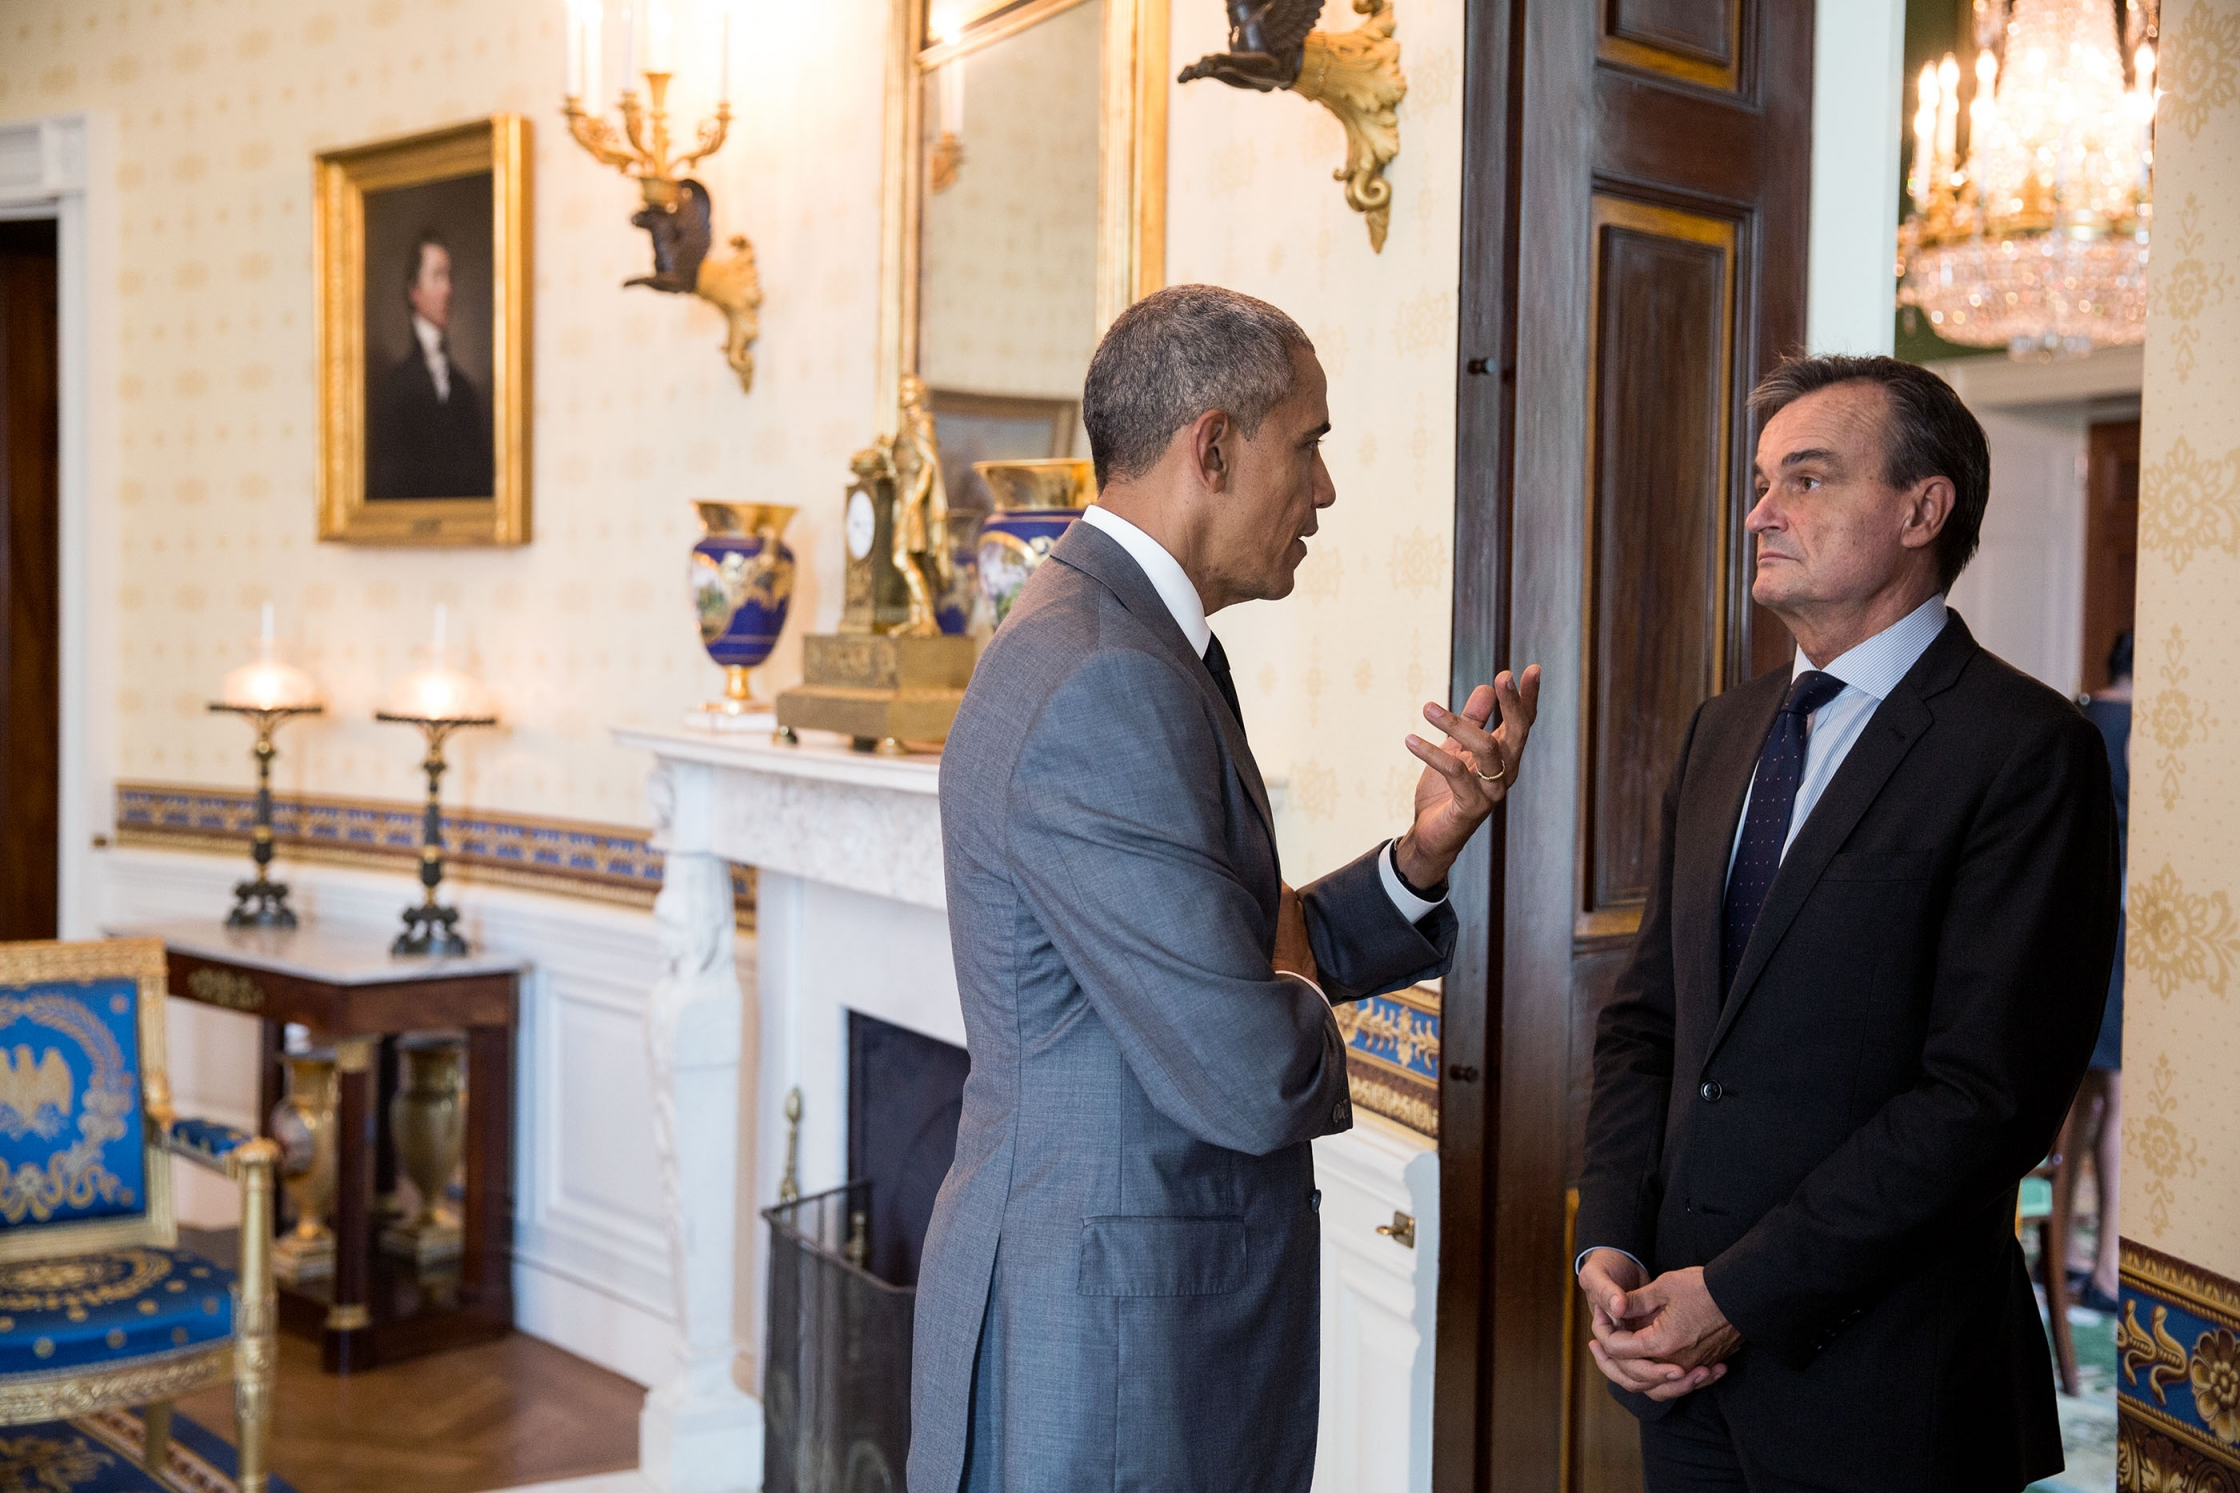 President Barack Obama talks with Ambassador of France to the United States Gérard Araud in the Blue Room of the White House prior to the Diplomatic Corps Reception, July 15, 2016.